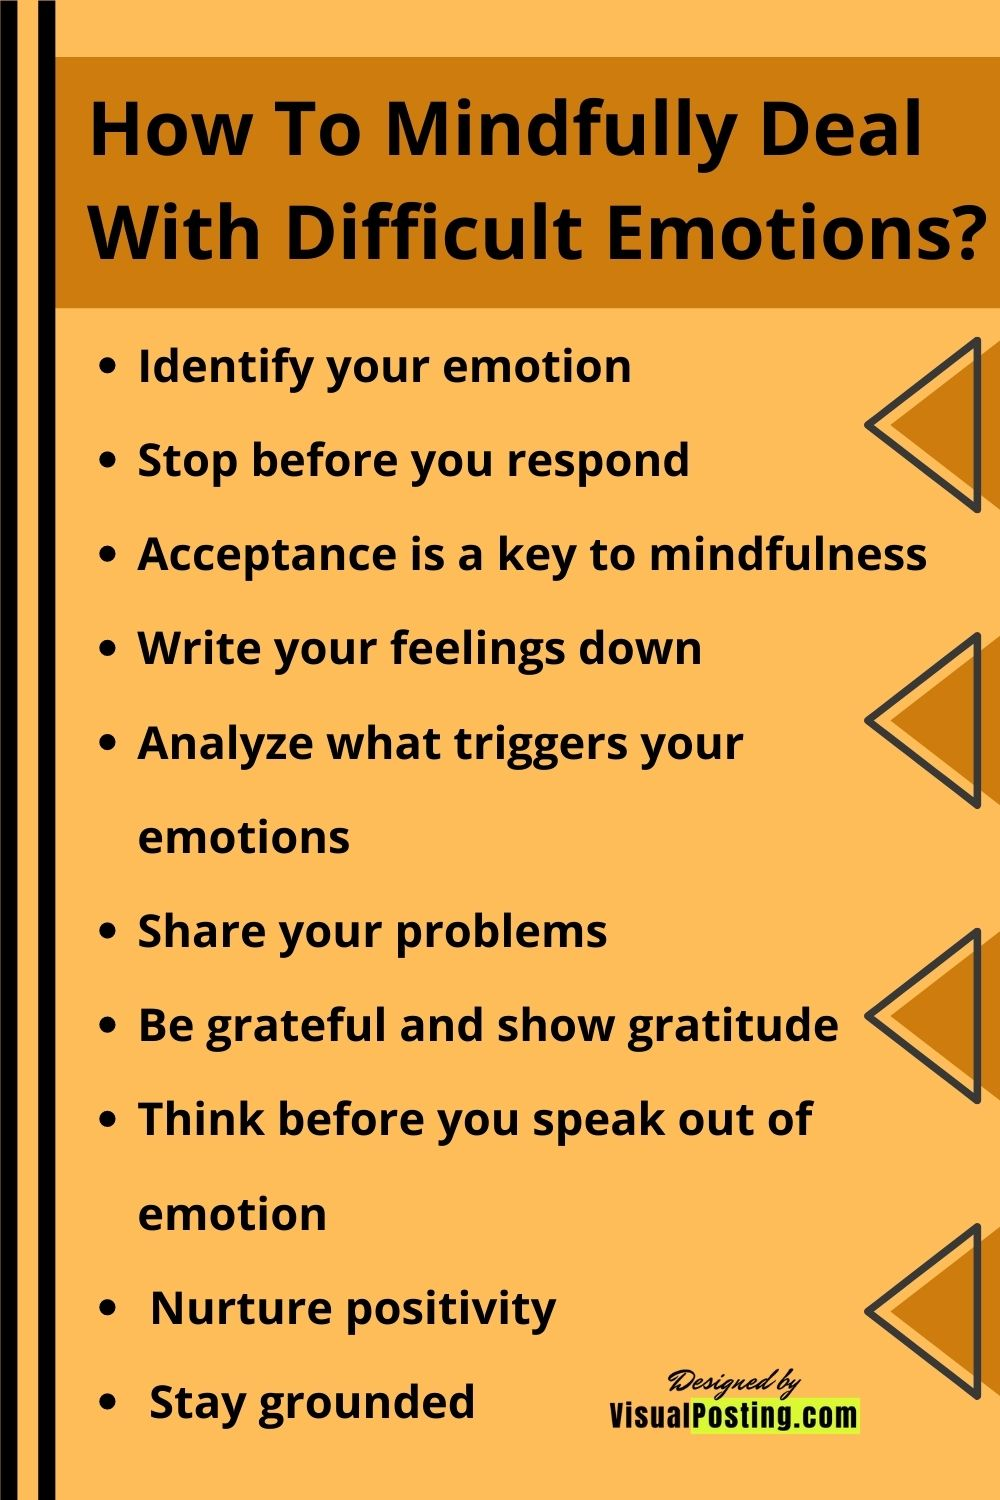 How To Mindfully Deal With Difficult Emotions?.jpg